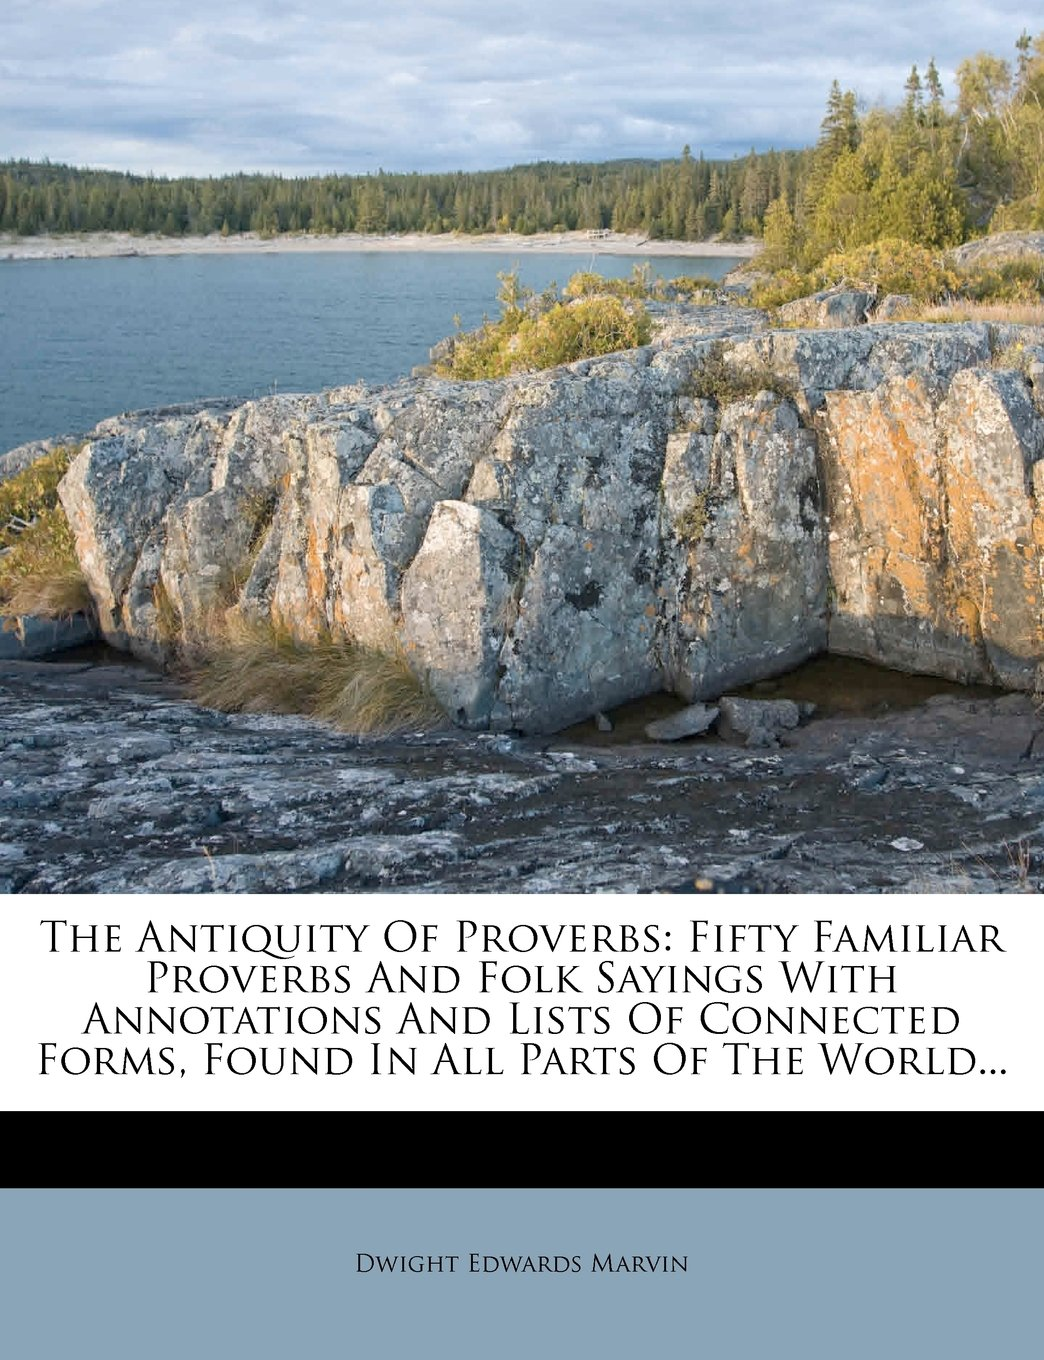 The Antiquity Of Proverbs: Fifty Familiar Proverbs And Folk Sayings With Annotations And Lists Of Connected Forms, Found In All Parts Of The World... PDF